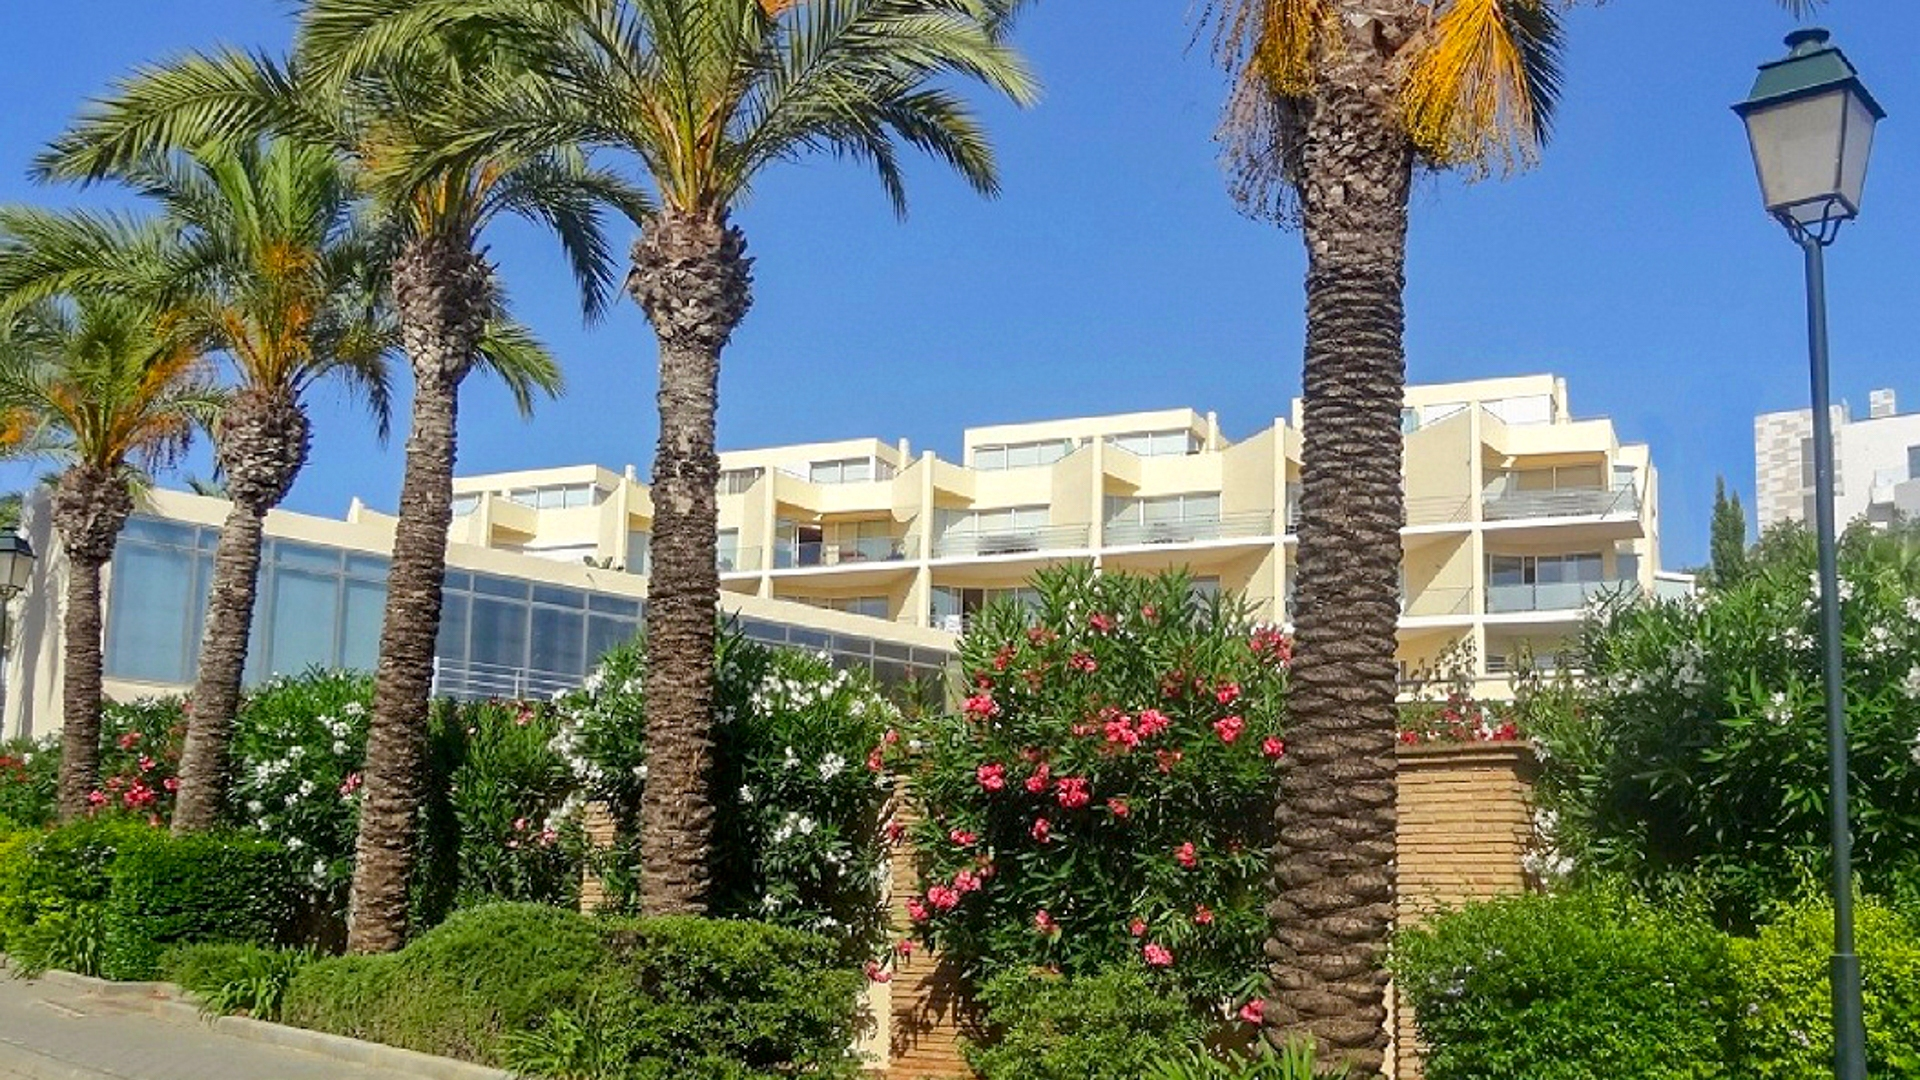 Spacious 3 Bedroom Duplex Apartment with Sea Views in Ferragudo, West Algarve | VM1213 This 3 bedrooms, 2 bathrooms duplex apartment is located within a renowned resort in Ferragudo. The complex has a beautiful lounge and dining area around the pool and is a short walk to the beach, riverfront restaurants and plaza.